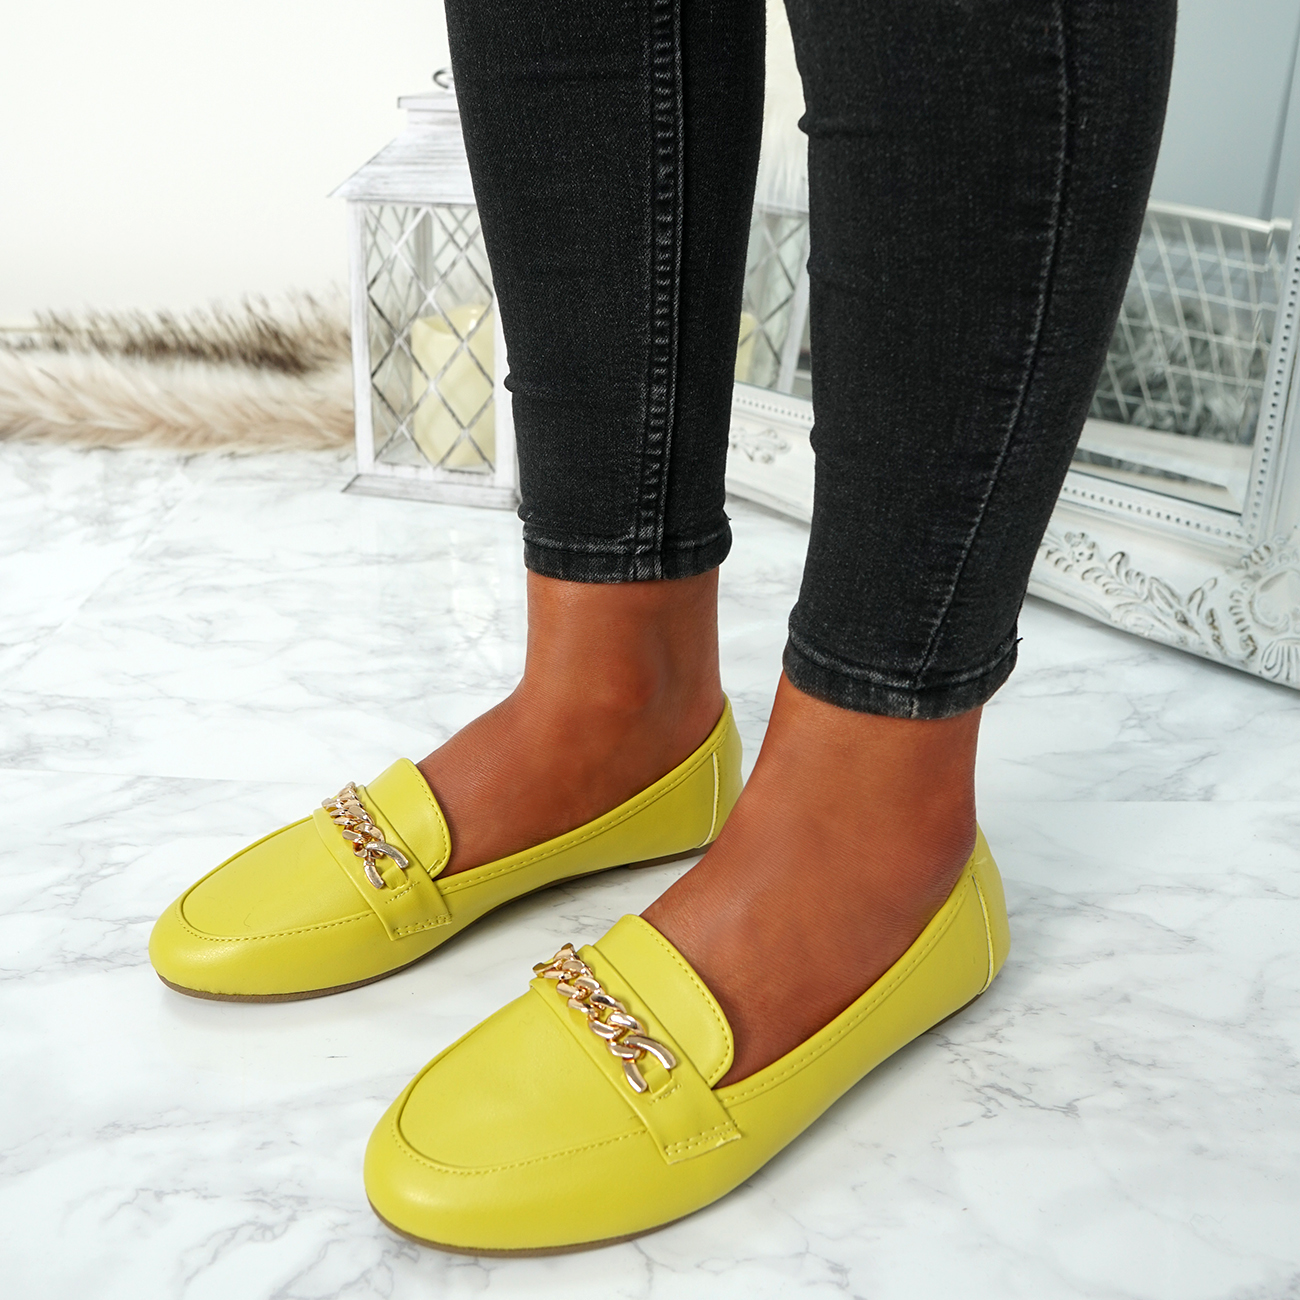 WOMENS-LADIES-CHAIN-SLIP-ON-BALLERINA-LOAFERS-BALLET-DOLLY-PUMPS-SHOES-SIZE thumbnail 53